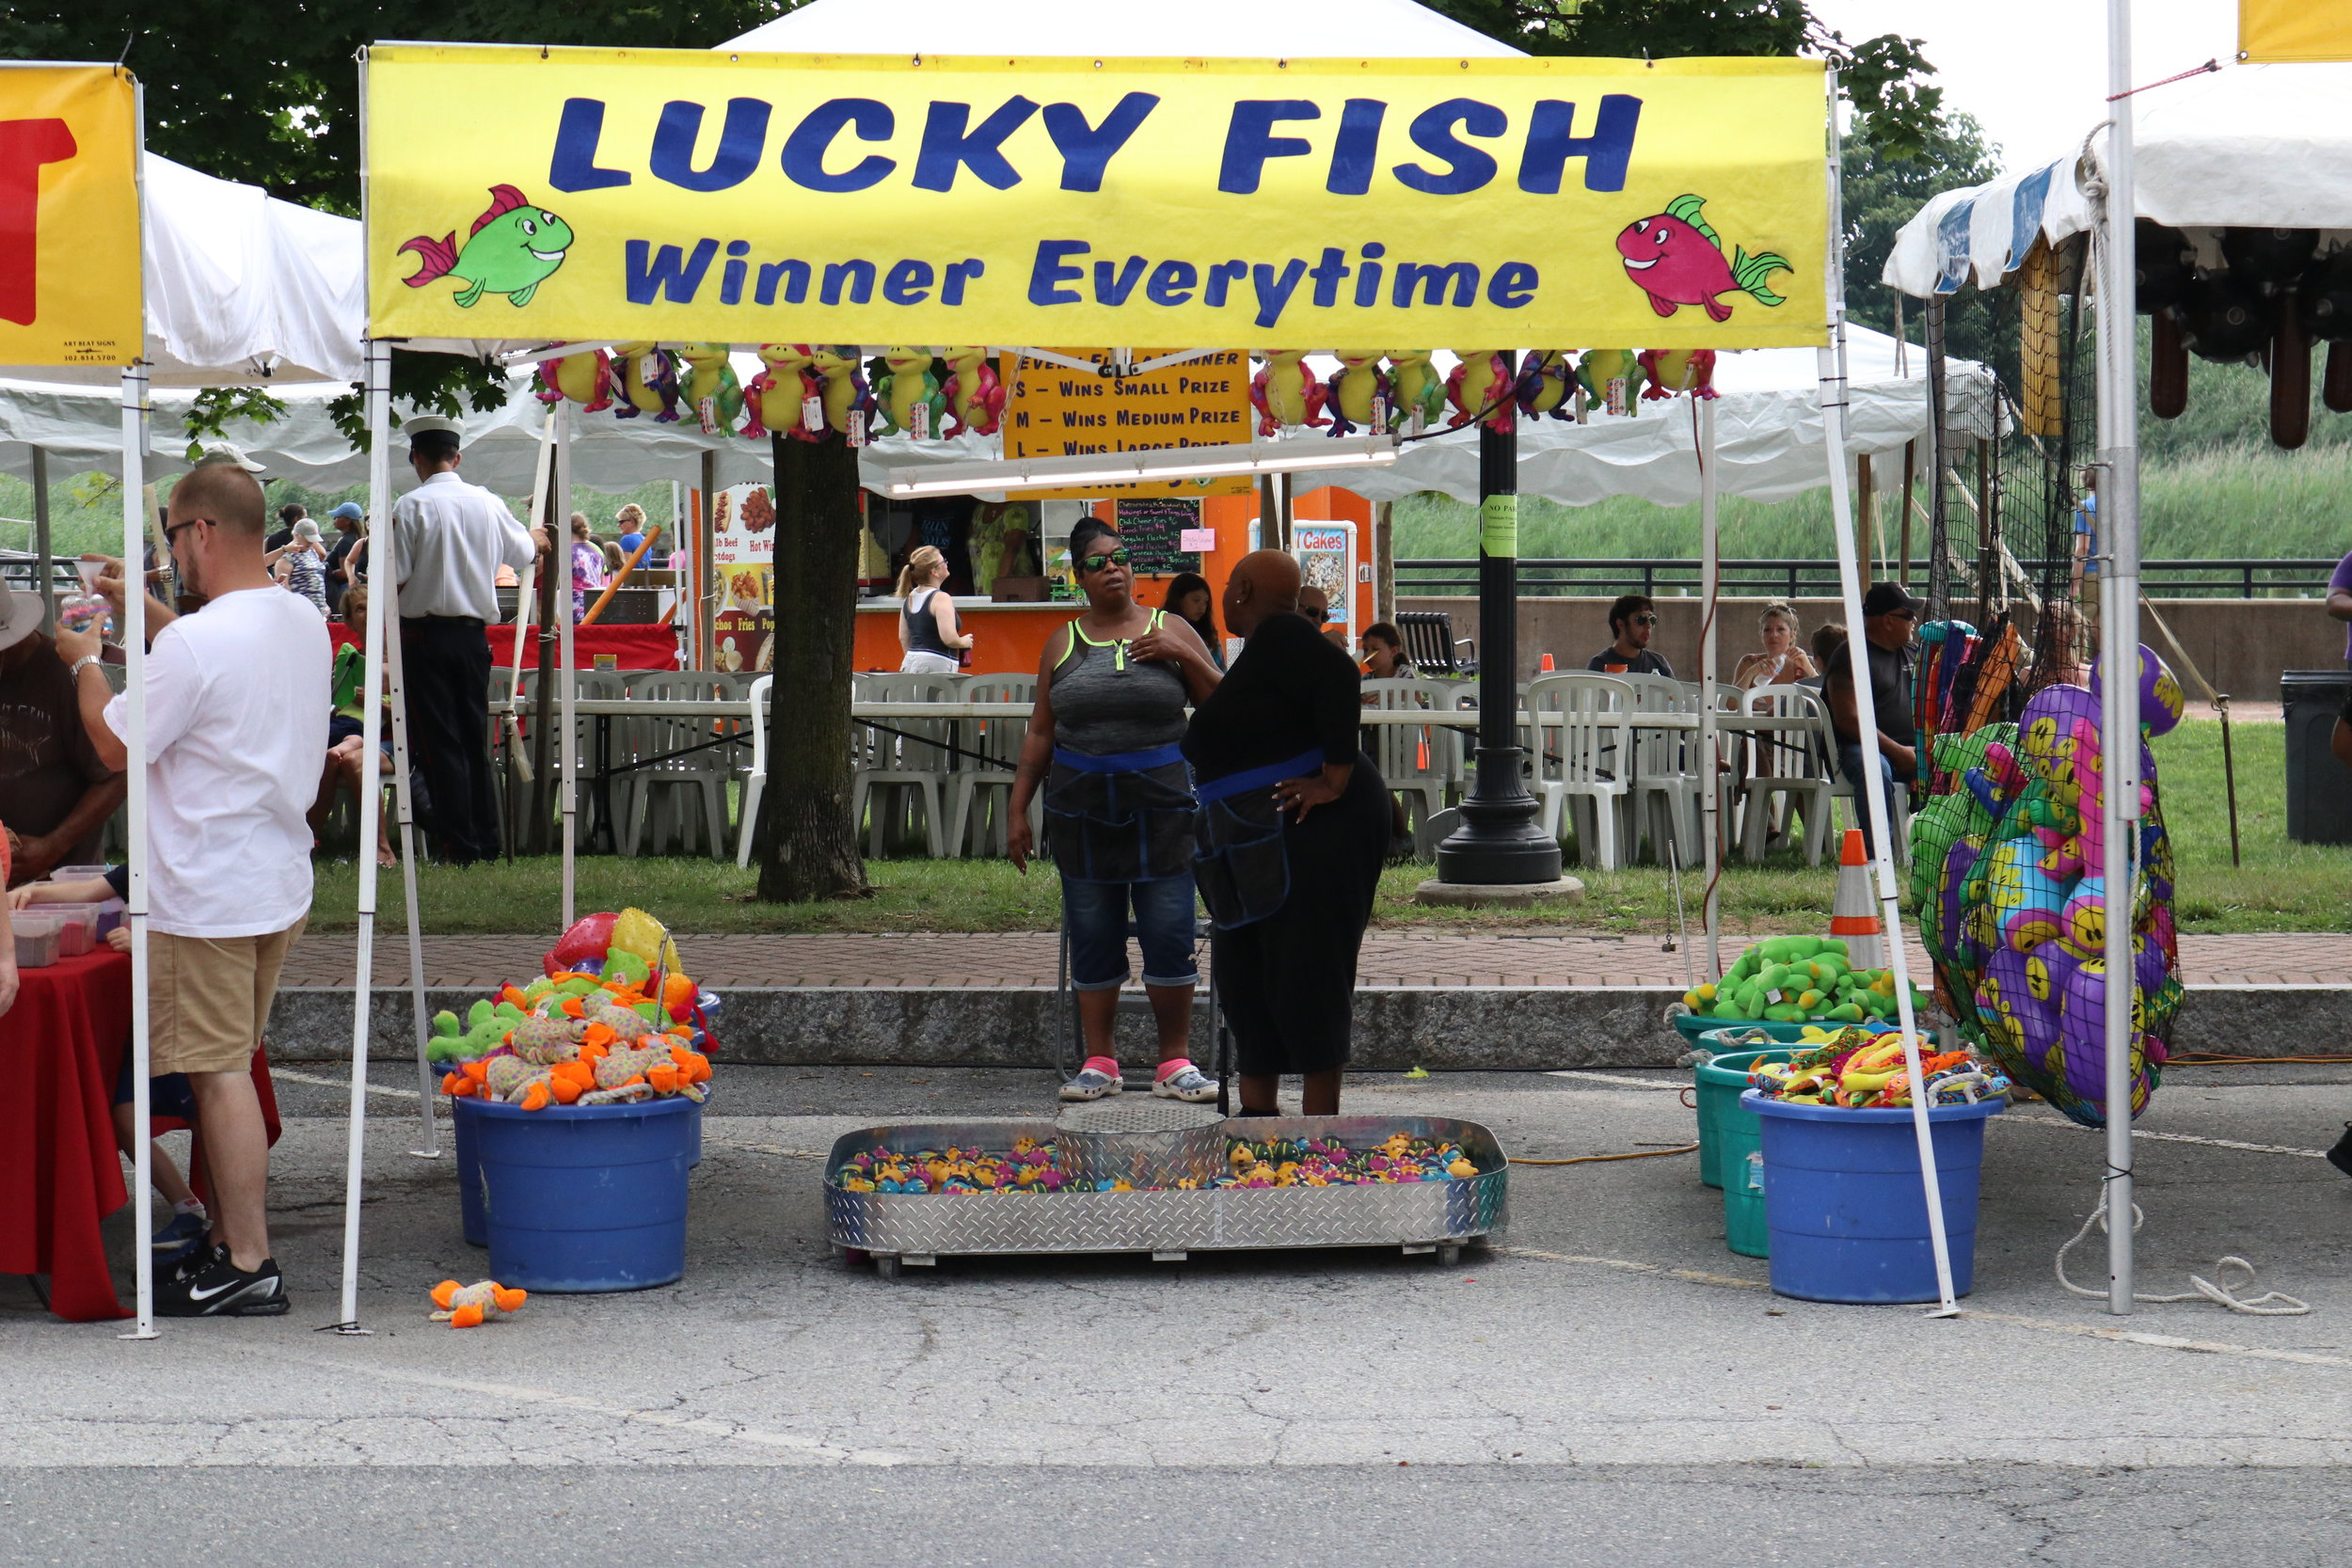 Lucky Fish - Catch a fish and win prize! Use the fishing rod to Cath the fish. Under each fish there are 3 letters, S,M,L. These letter determine the prize you win. How lucky are you?